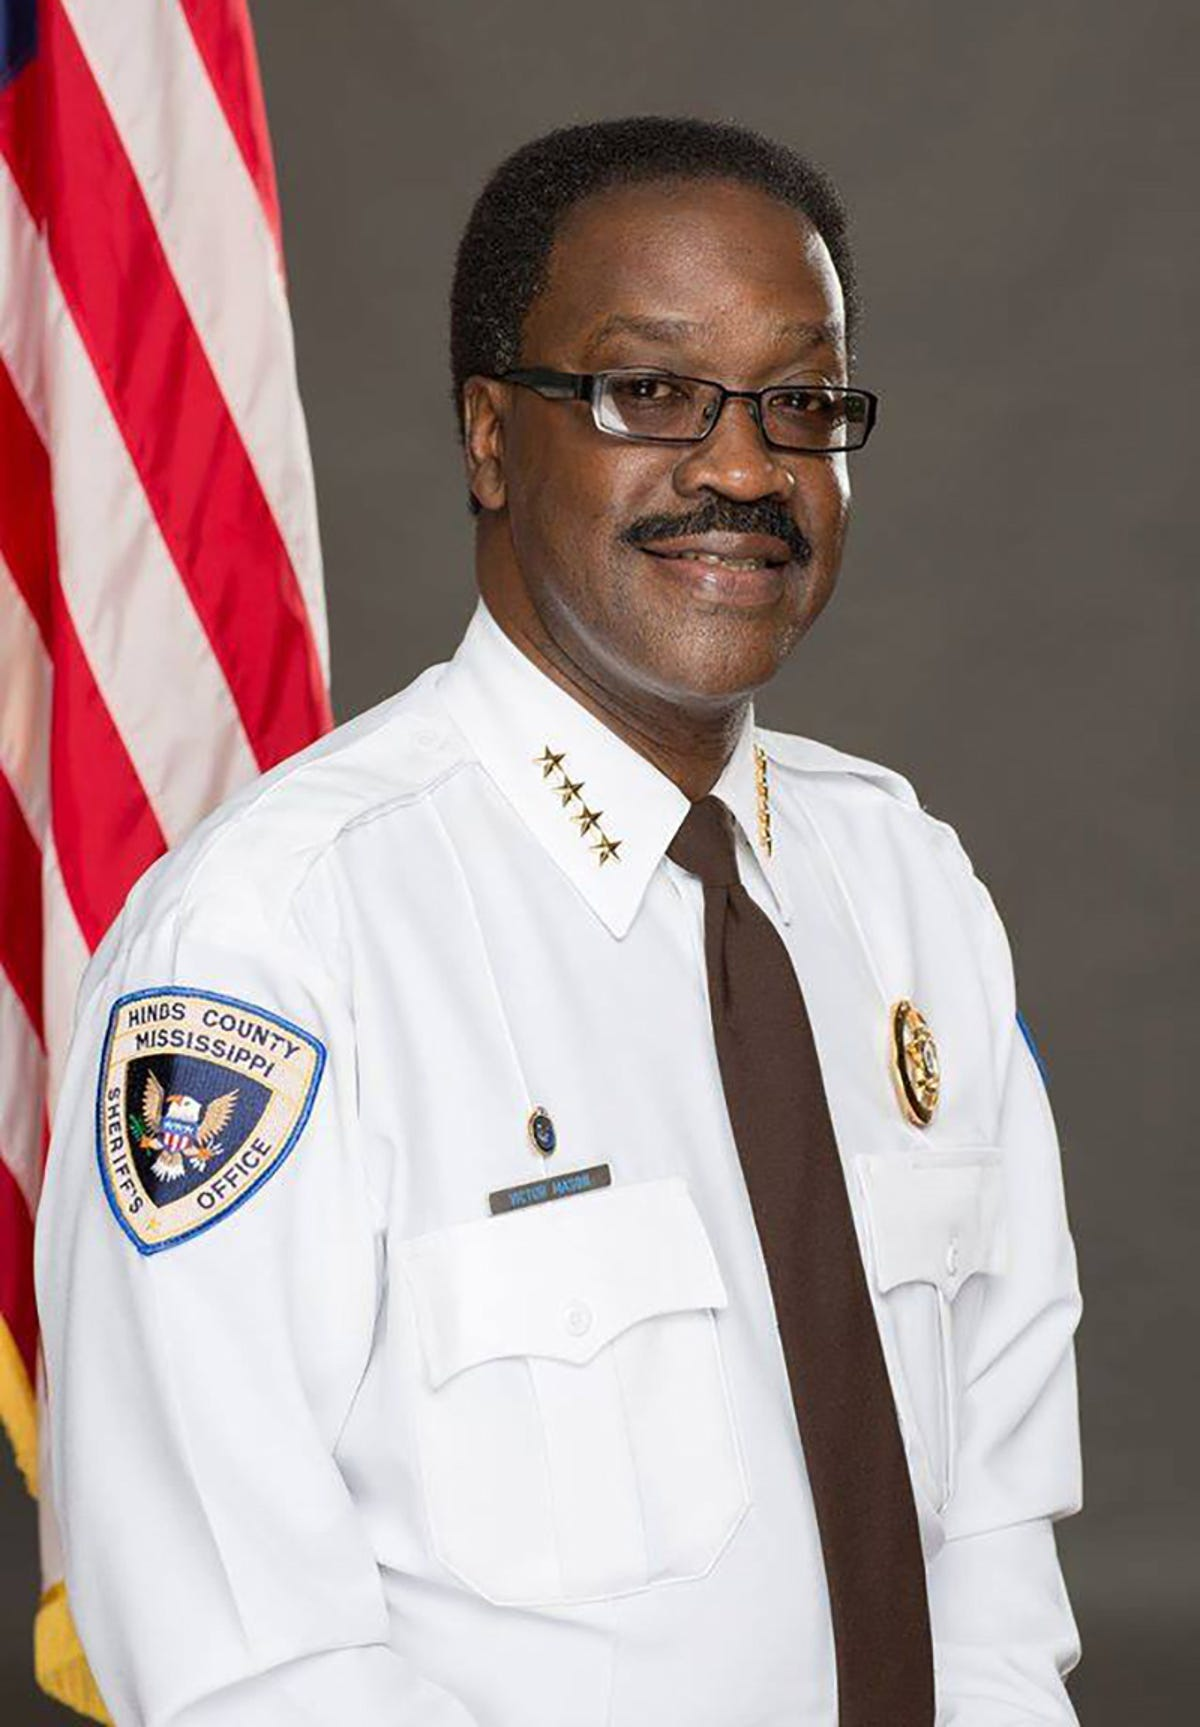 Hinds County sheriff forms street crime unit